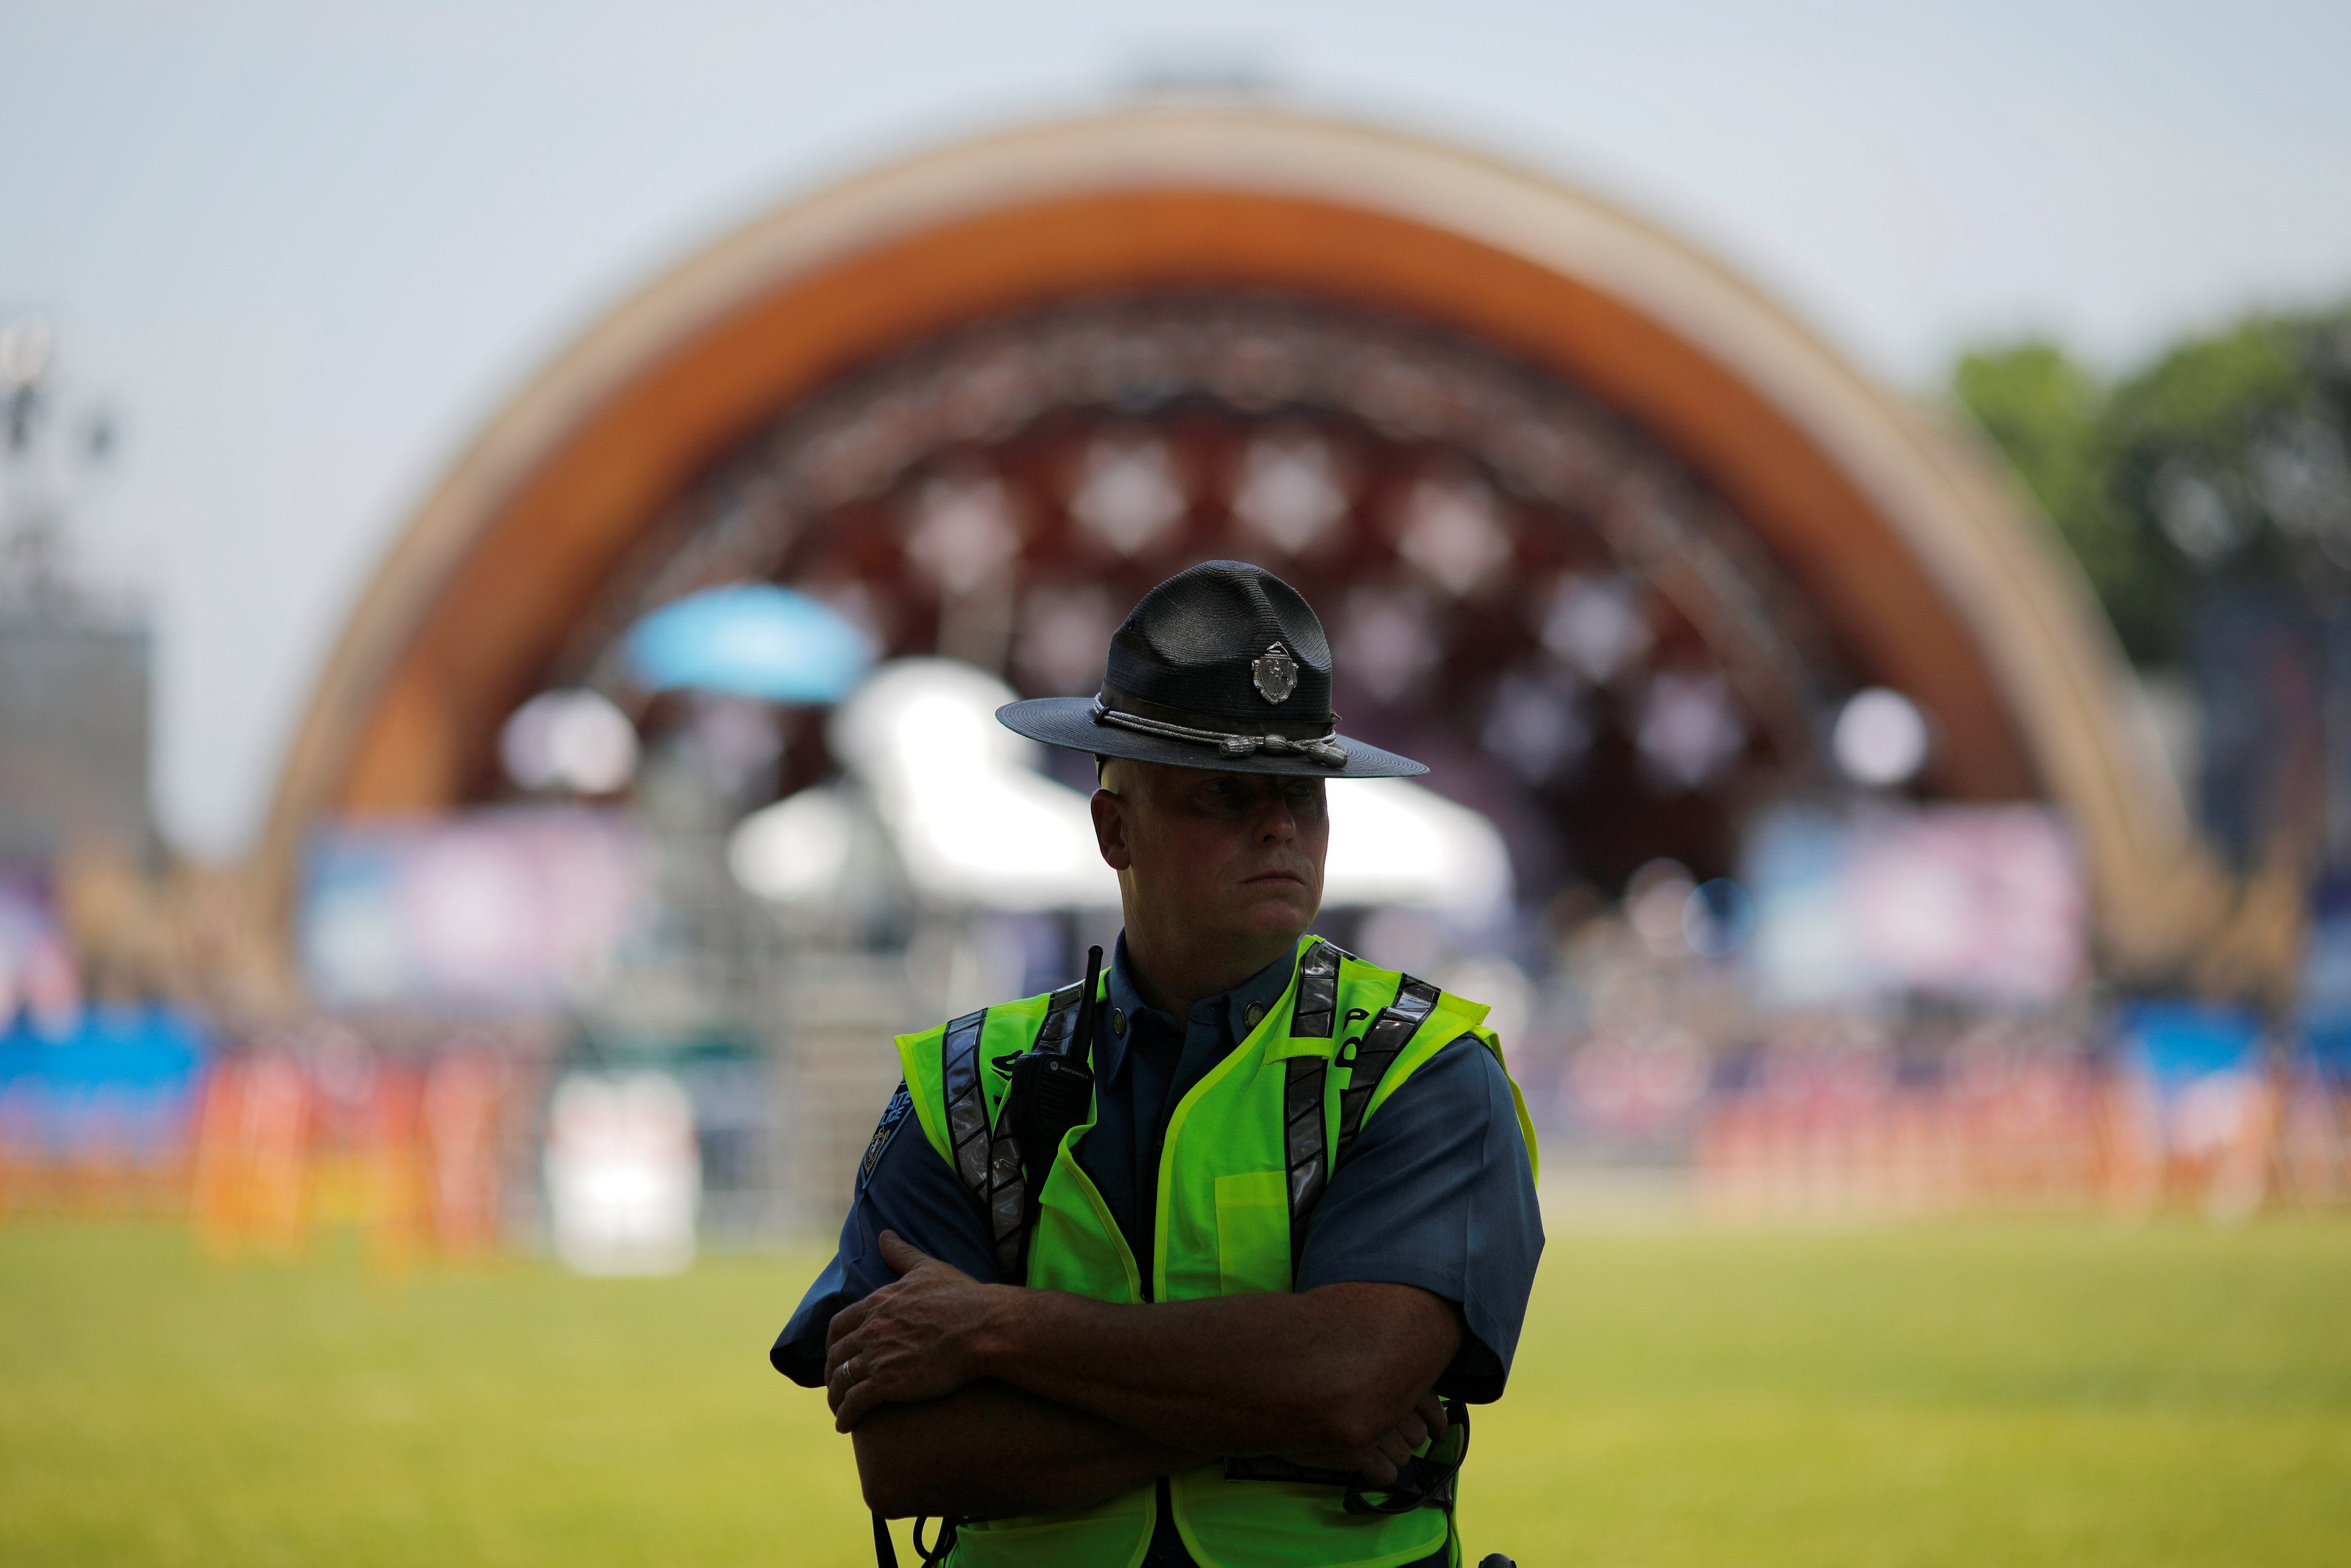 A Massachusetts State Police trooper stands at the Hatch Shell ahead of Fourth of July festivities in Boston